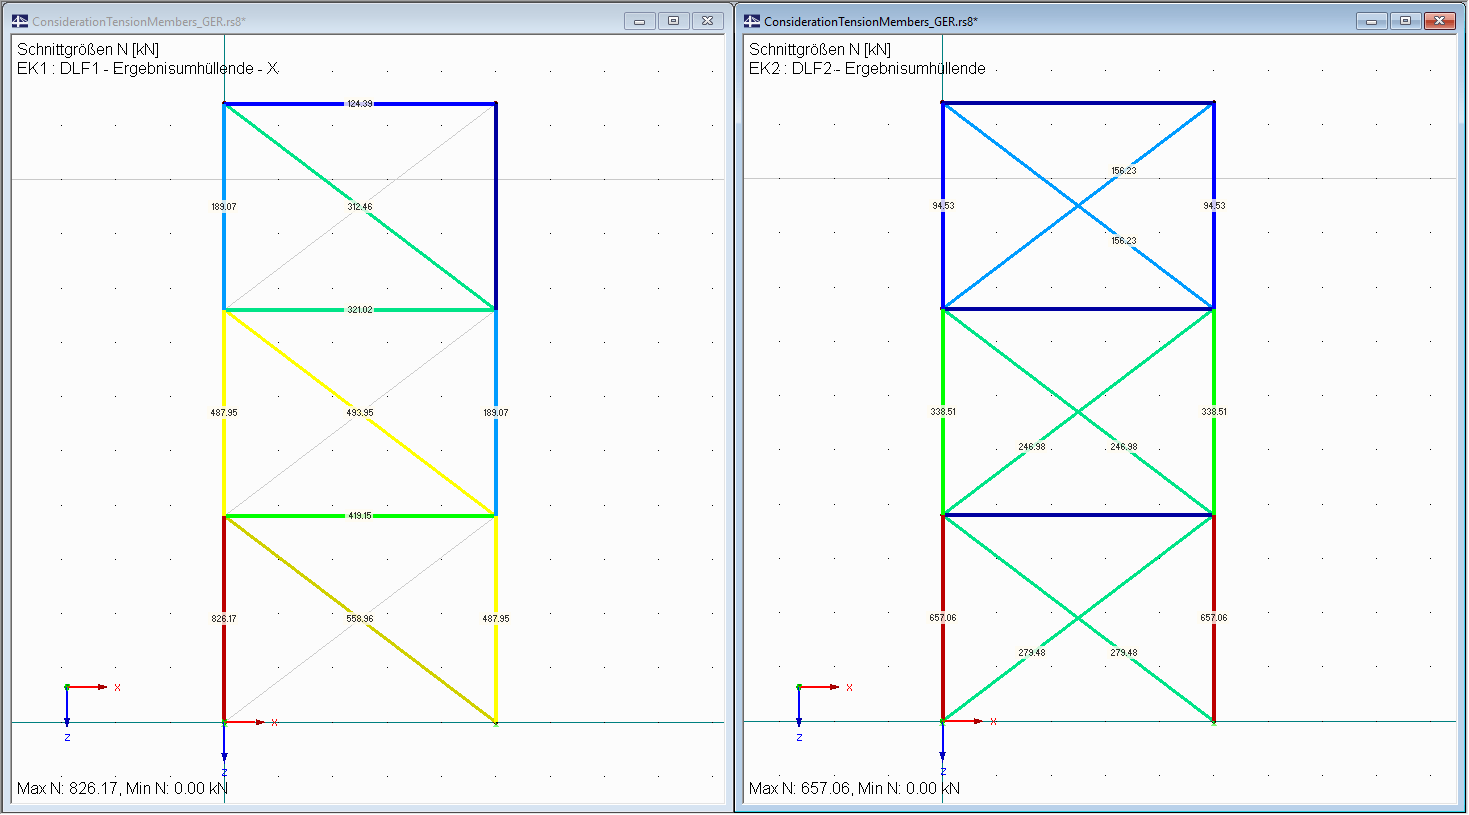 Differences in Results of Both Add-on Modules